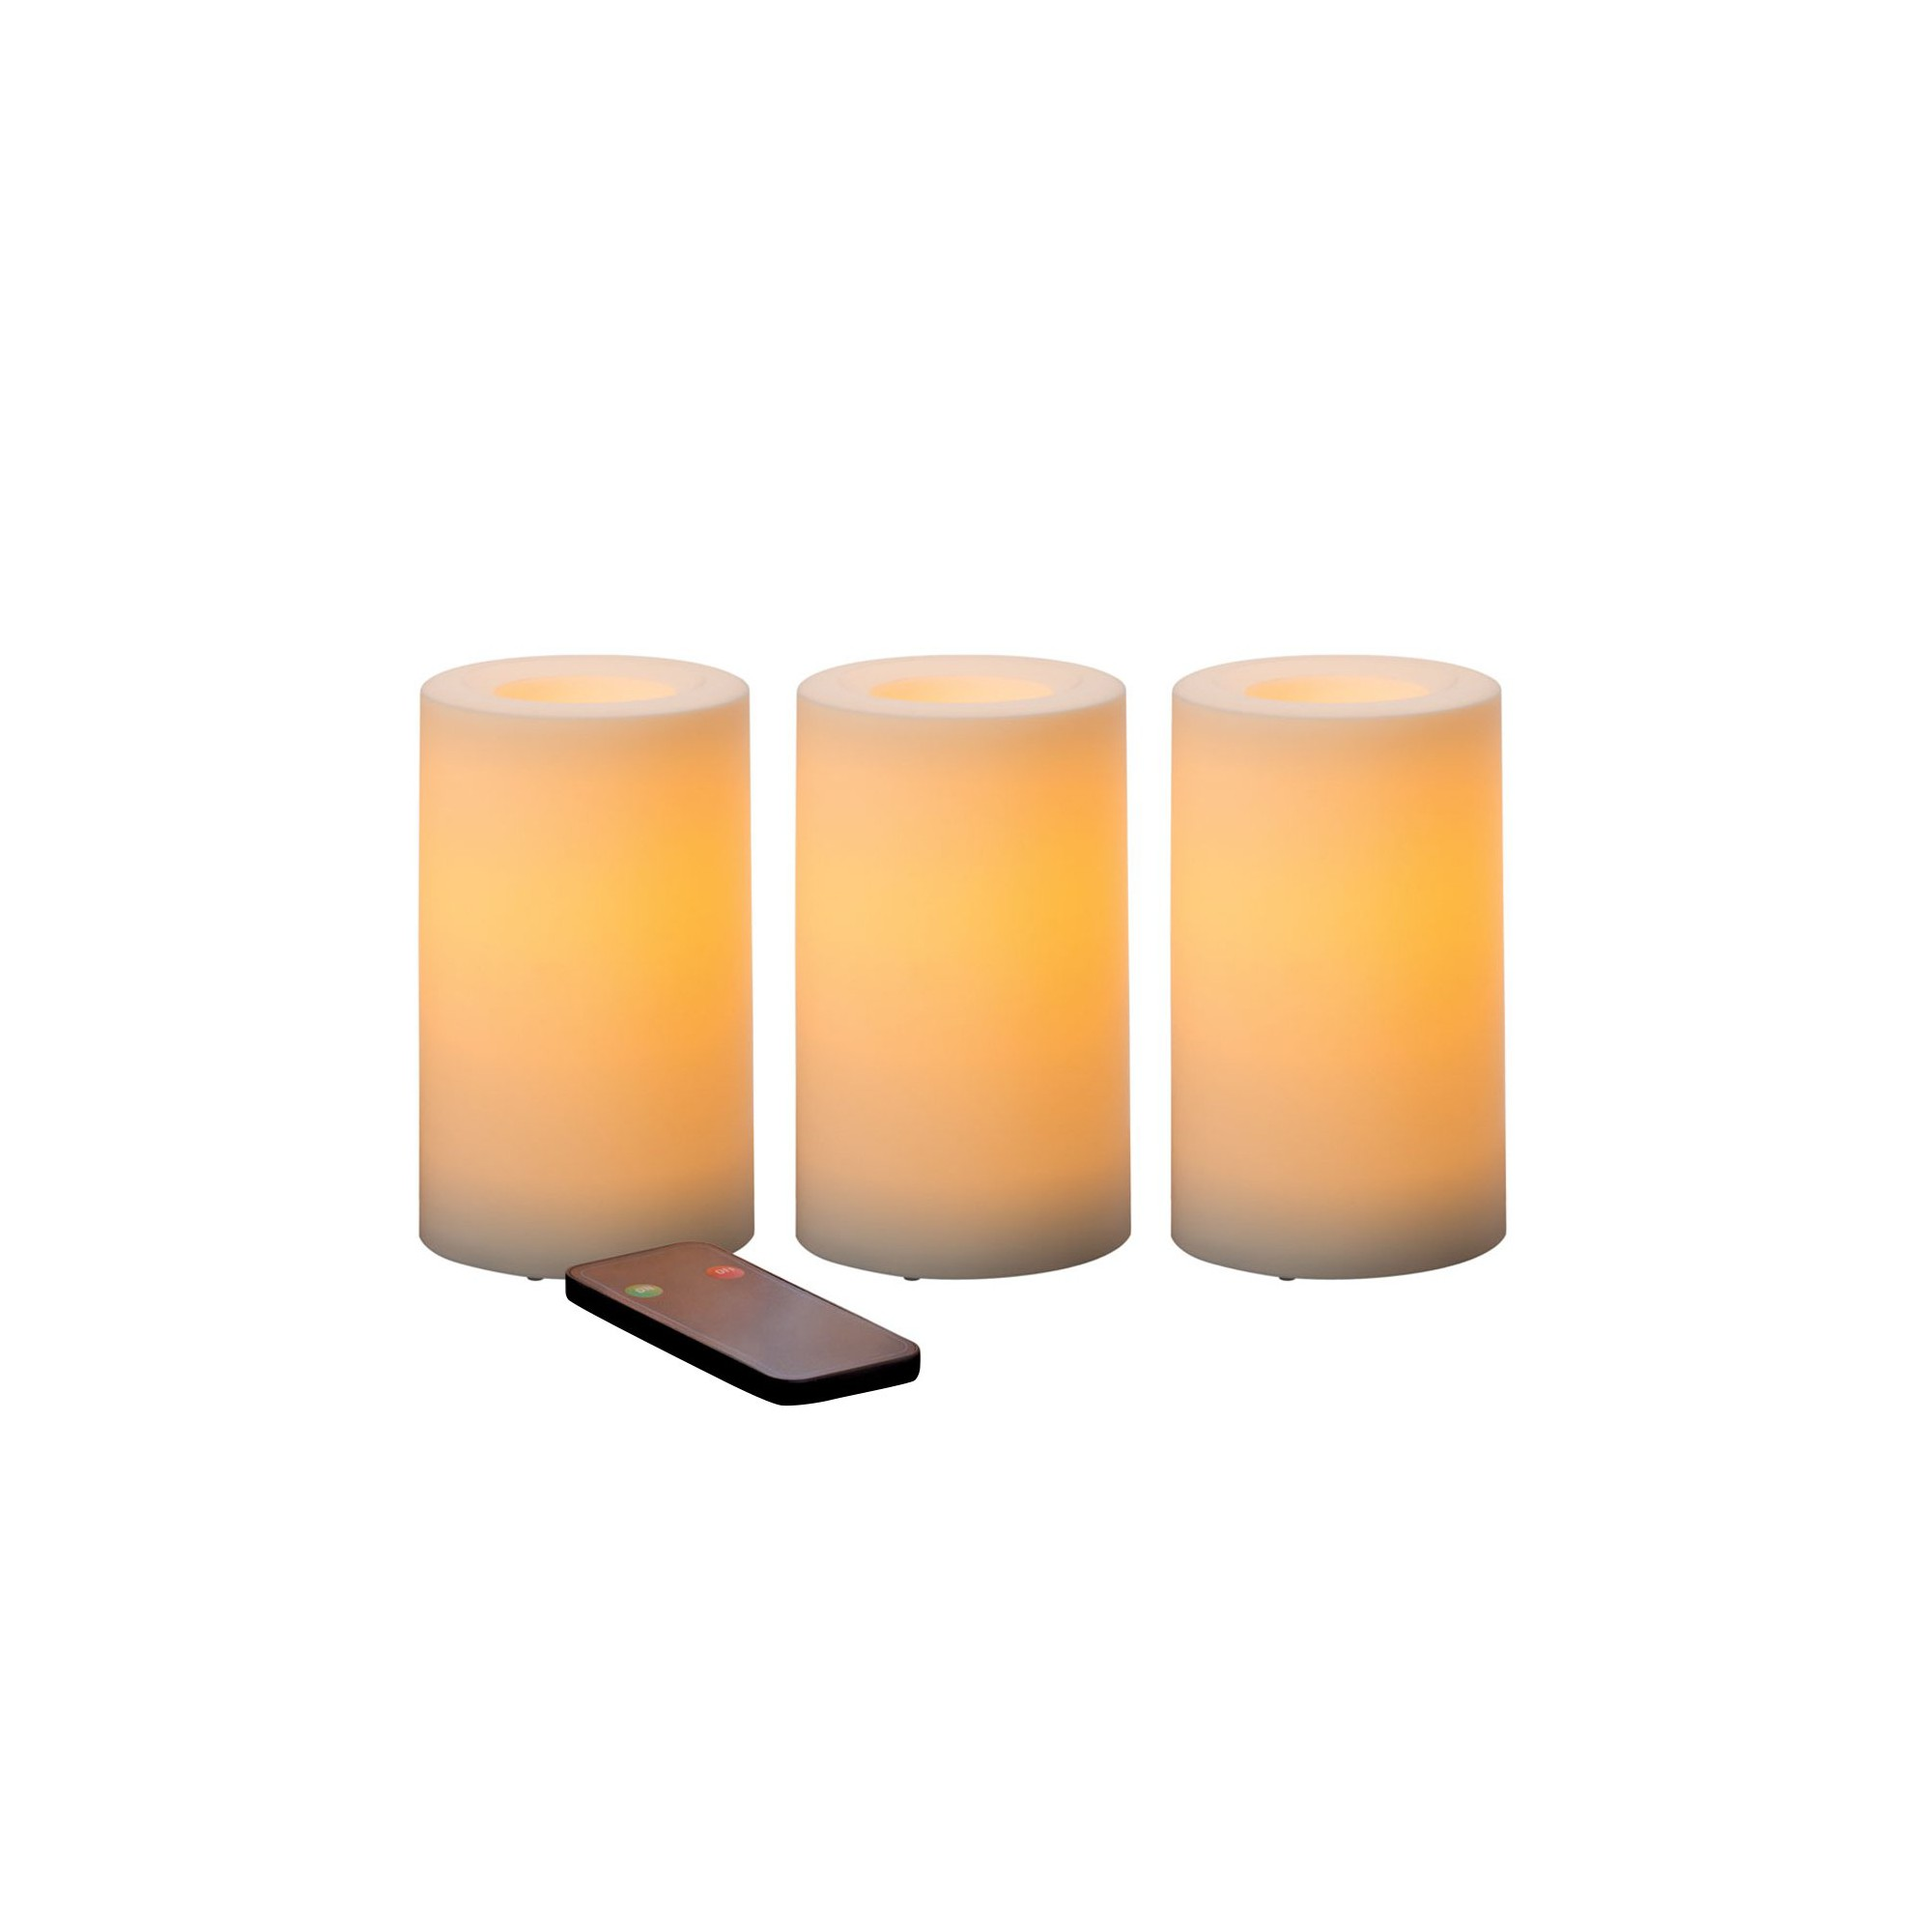 "Outdoor Flameless Candles New 3Pc Outdoor Flameless Led Pillar Candle With Remote Control 3""x5 Design Decoration"